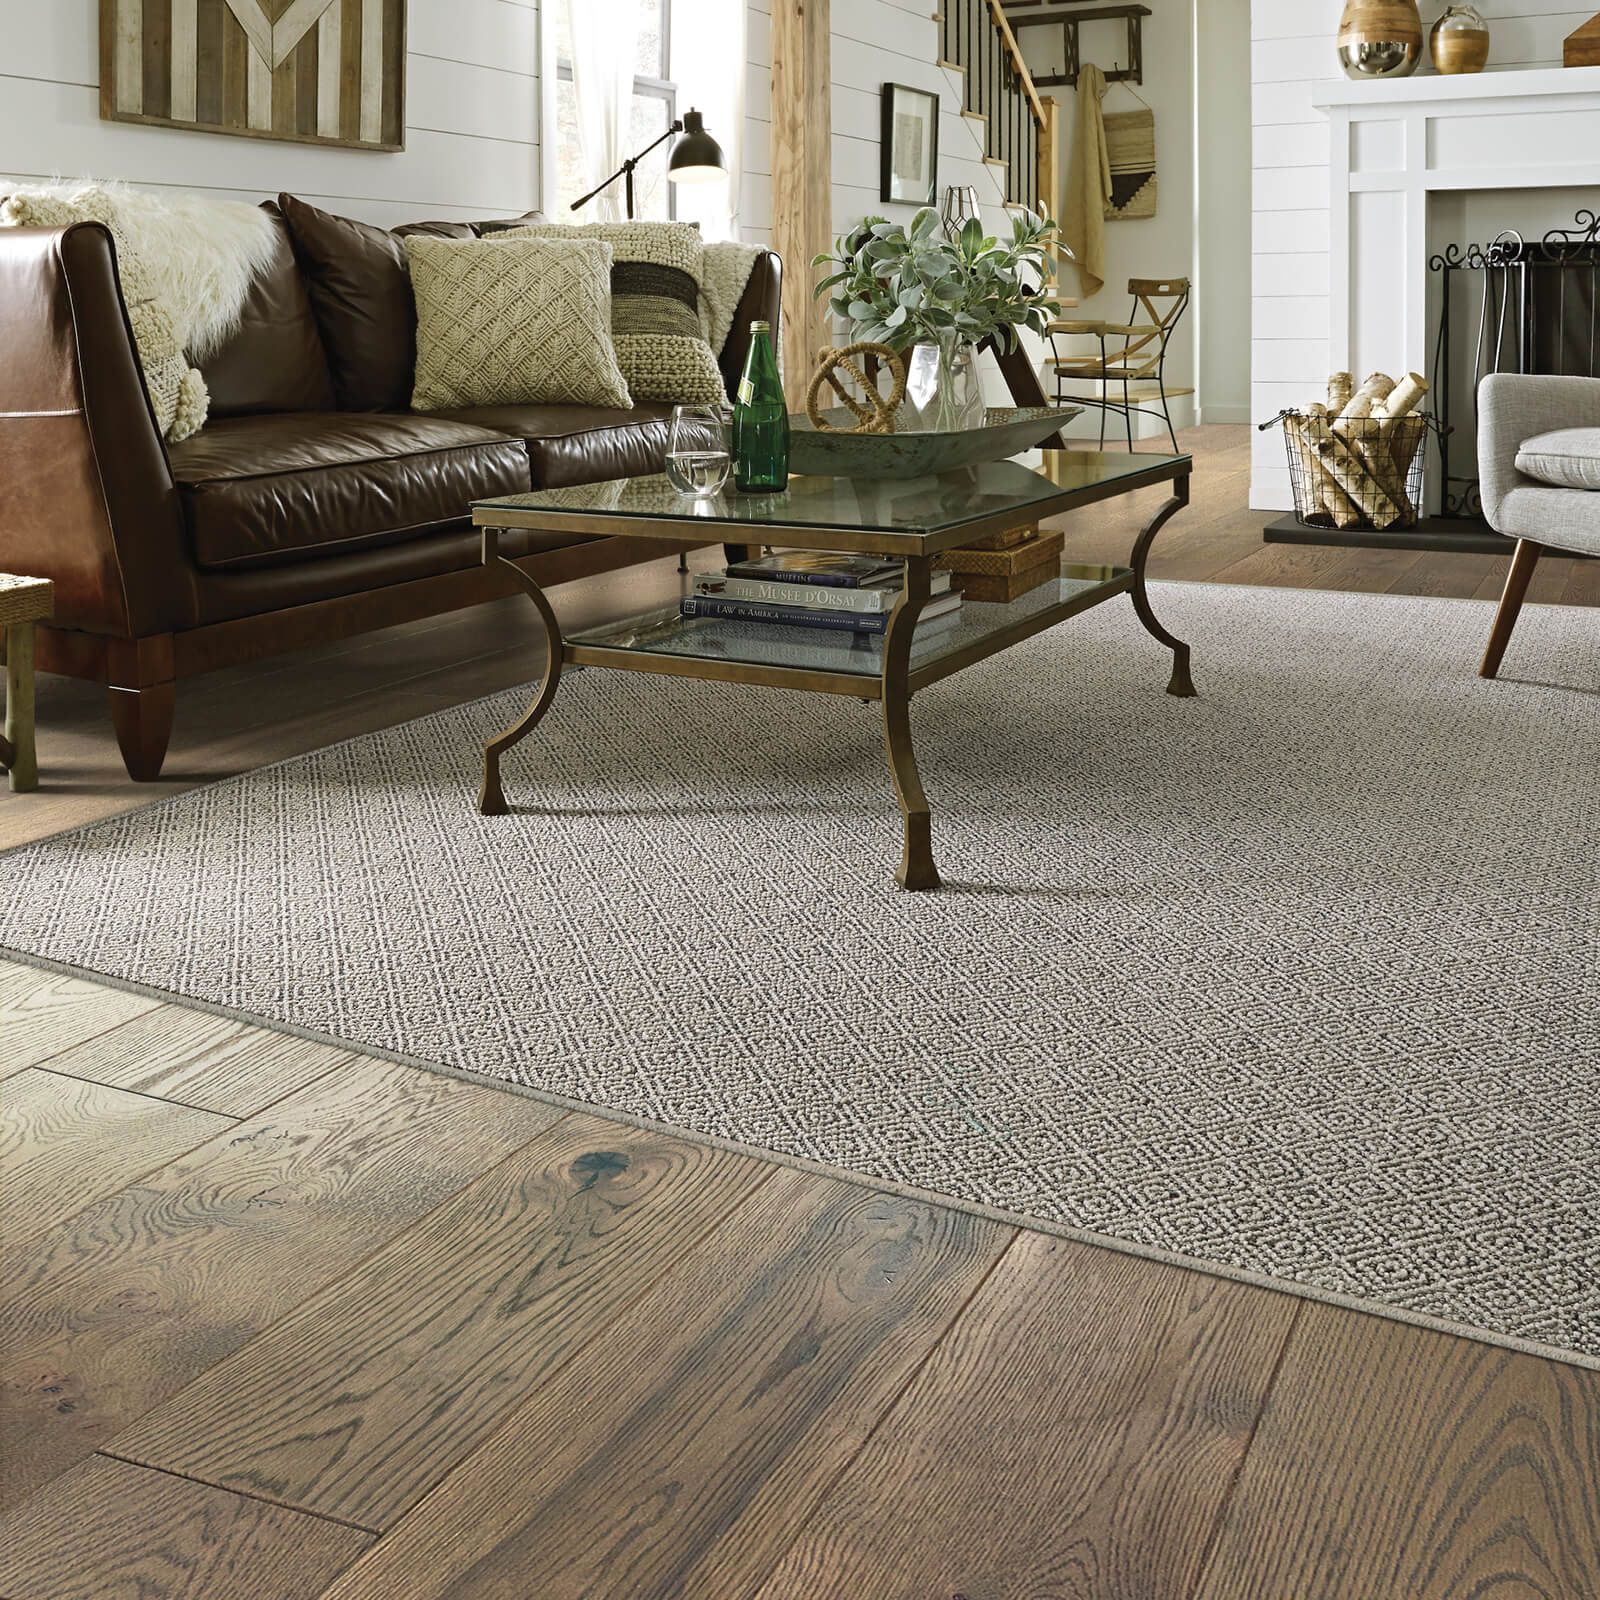 Buckingham Carpet | McCool's Flooring